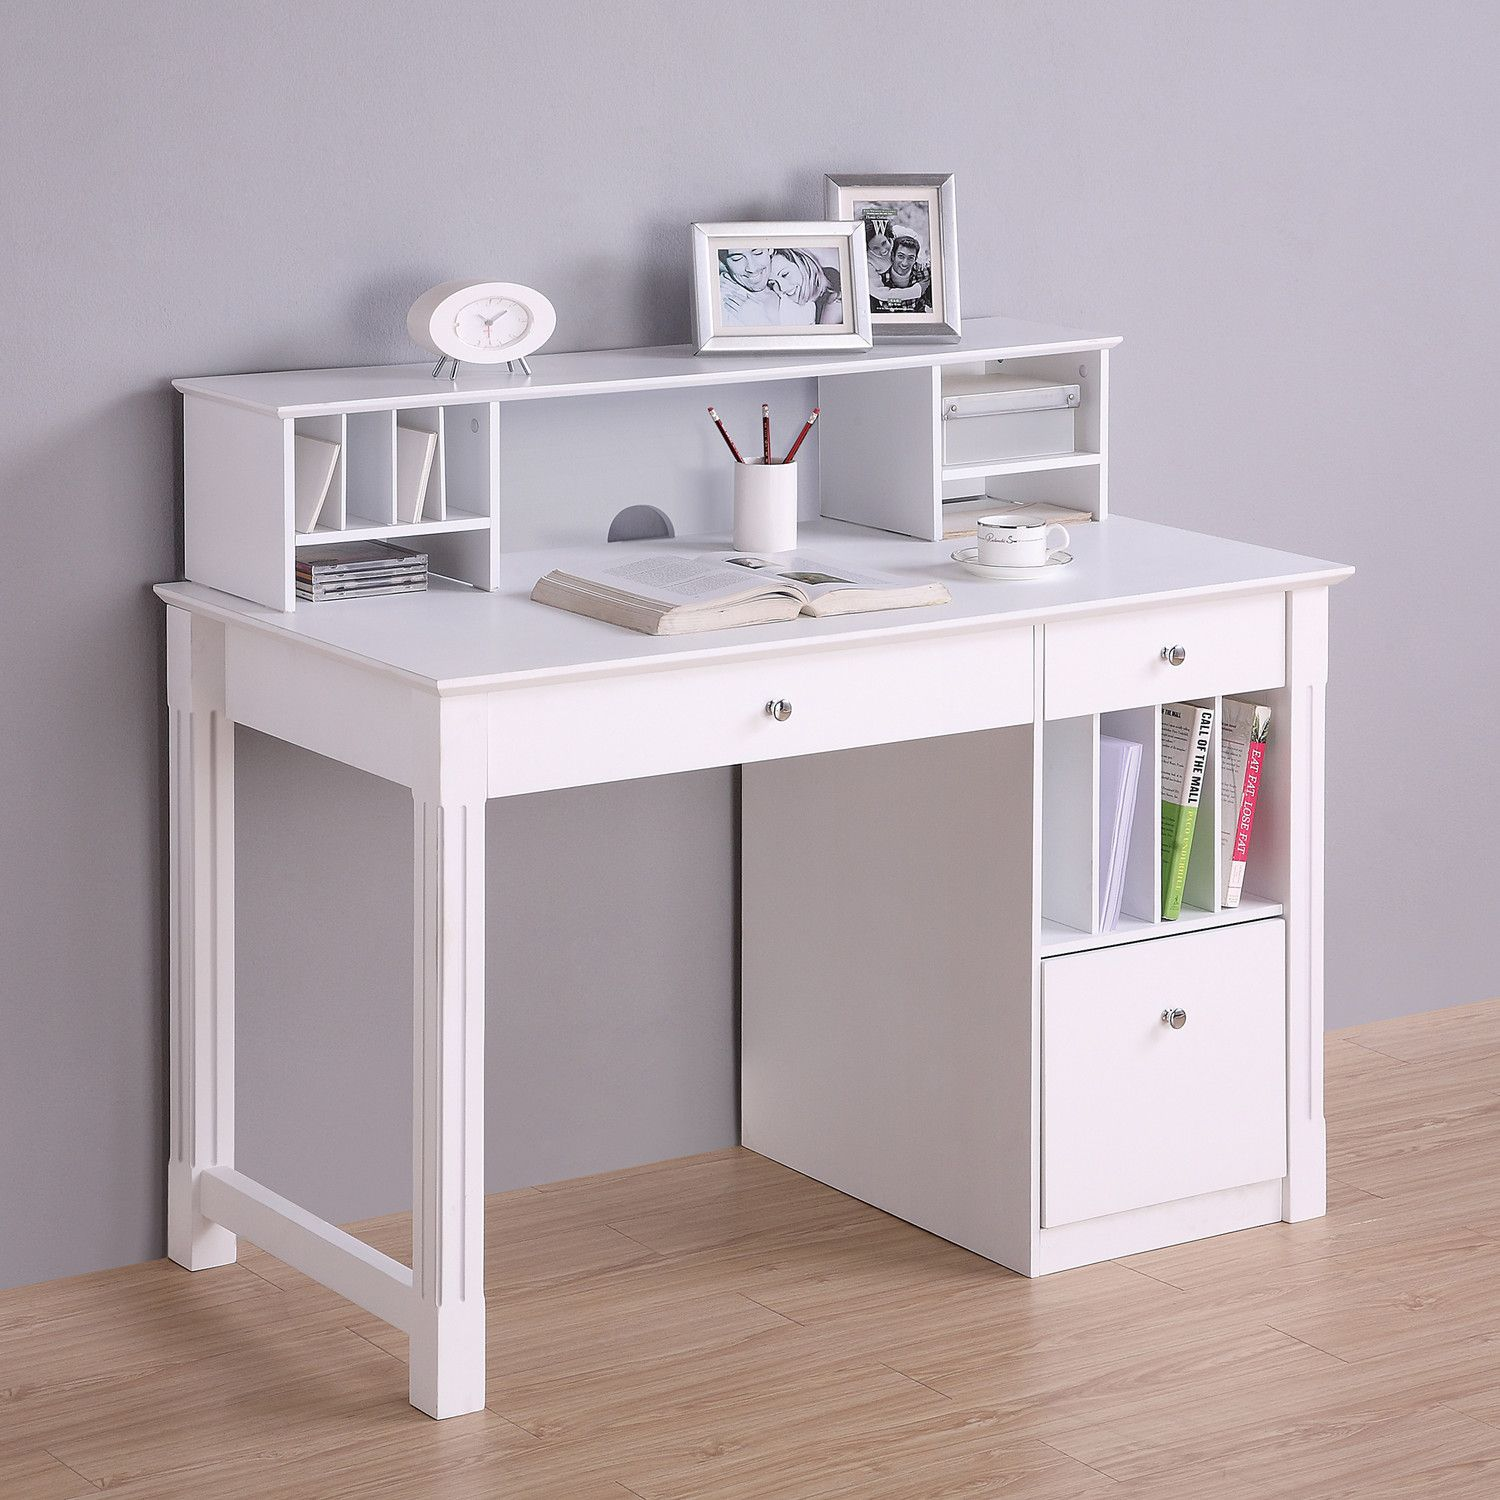 Home Loft Concepts Deluxe Writing Desk with Hutch | My Wish List ...